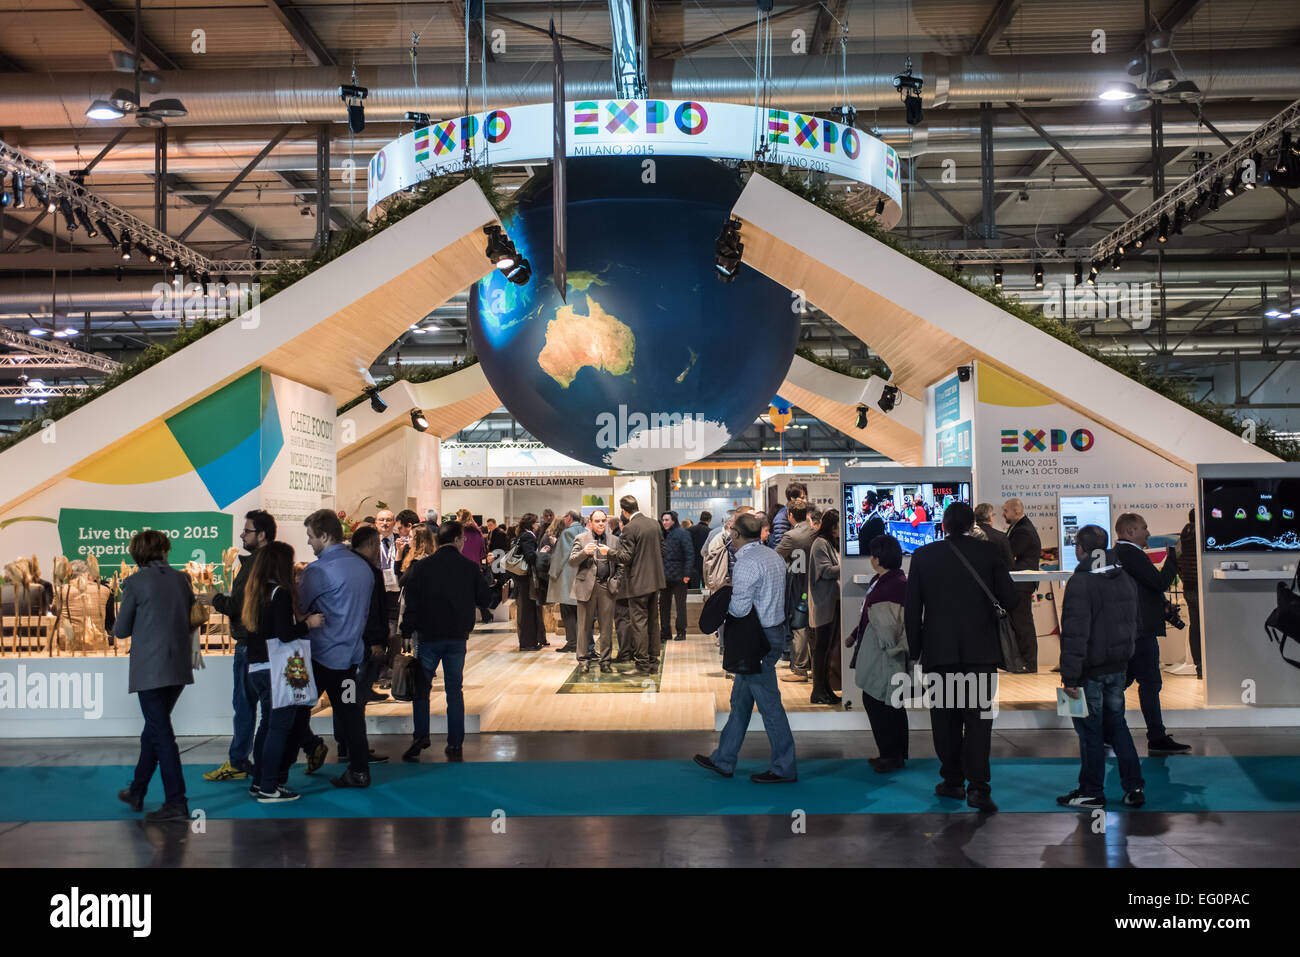 MILAN, ITALY: visitors walk in front of the Expo 2015 stand during BIT at Rho-Fiera in Milan on February 12, 2015 - Stock Image